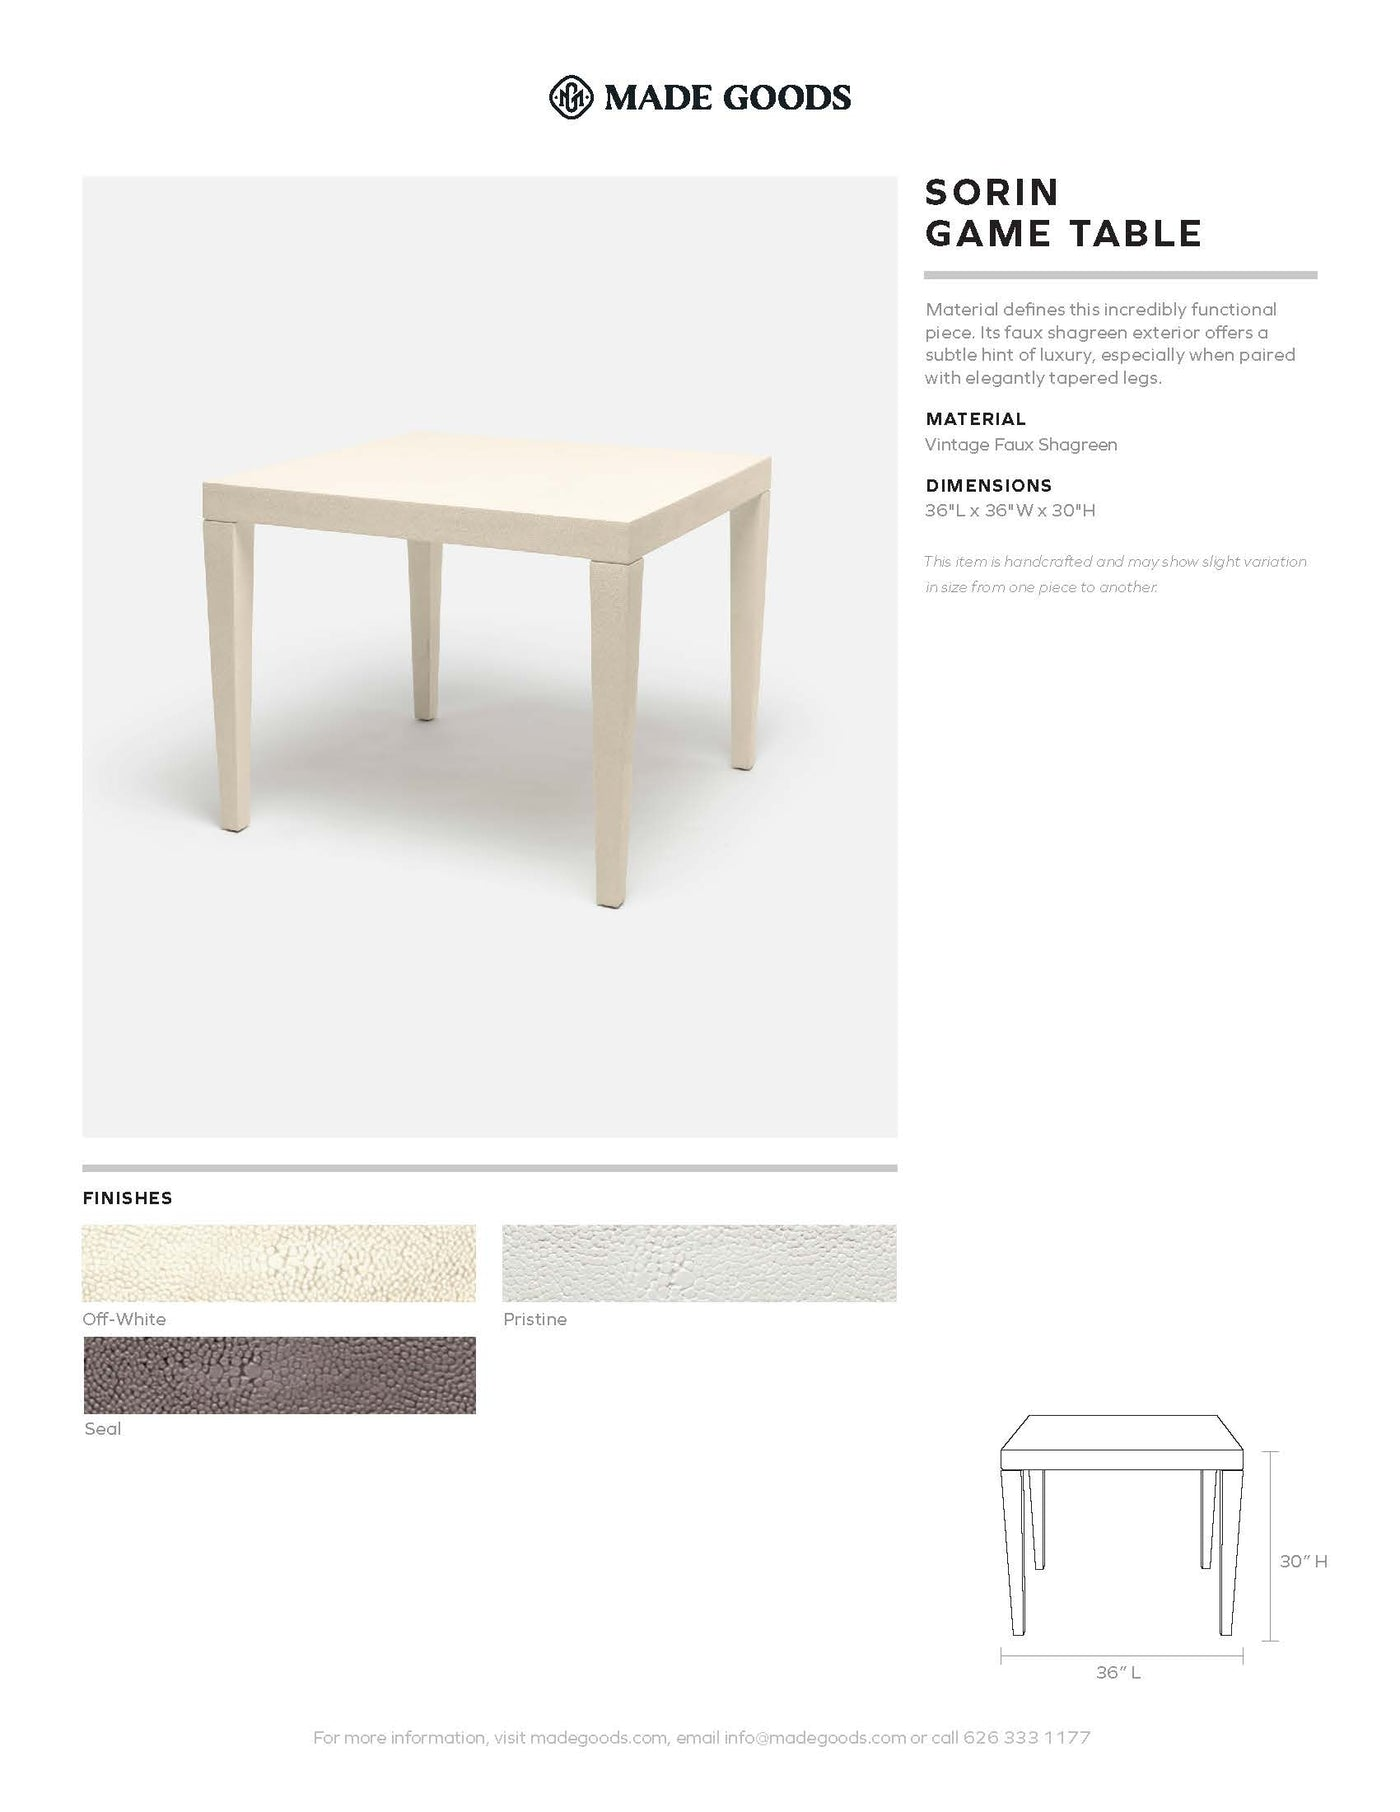 made goods sorin game table tearsheet